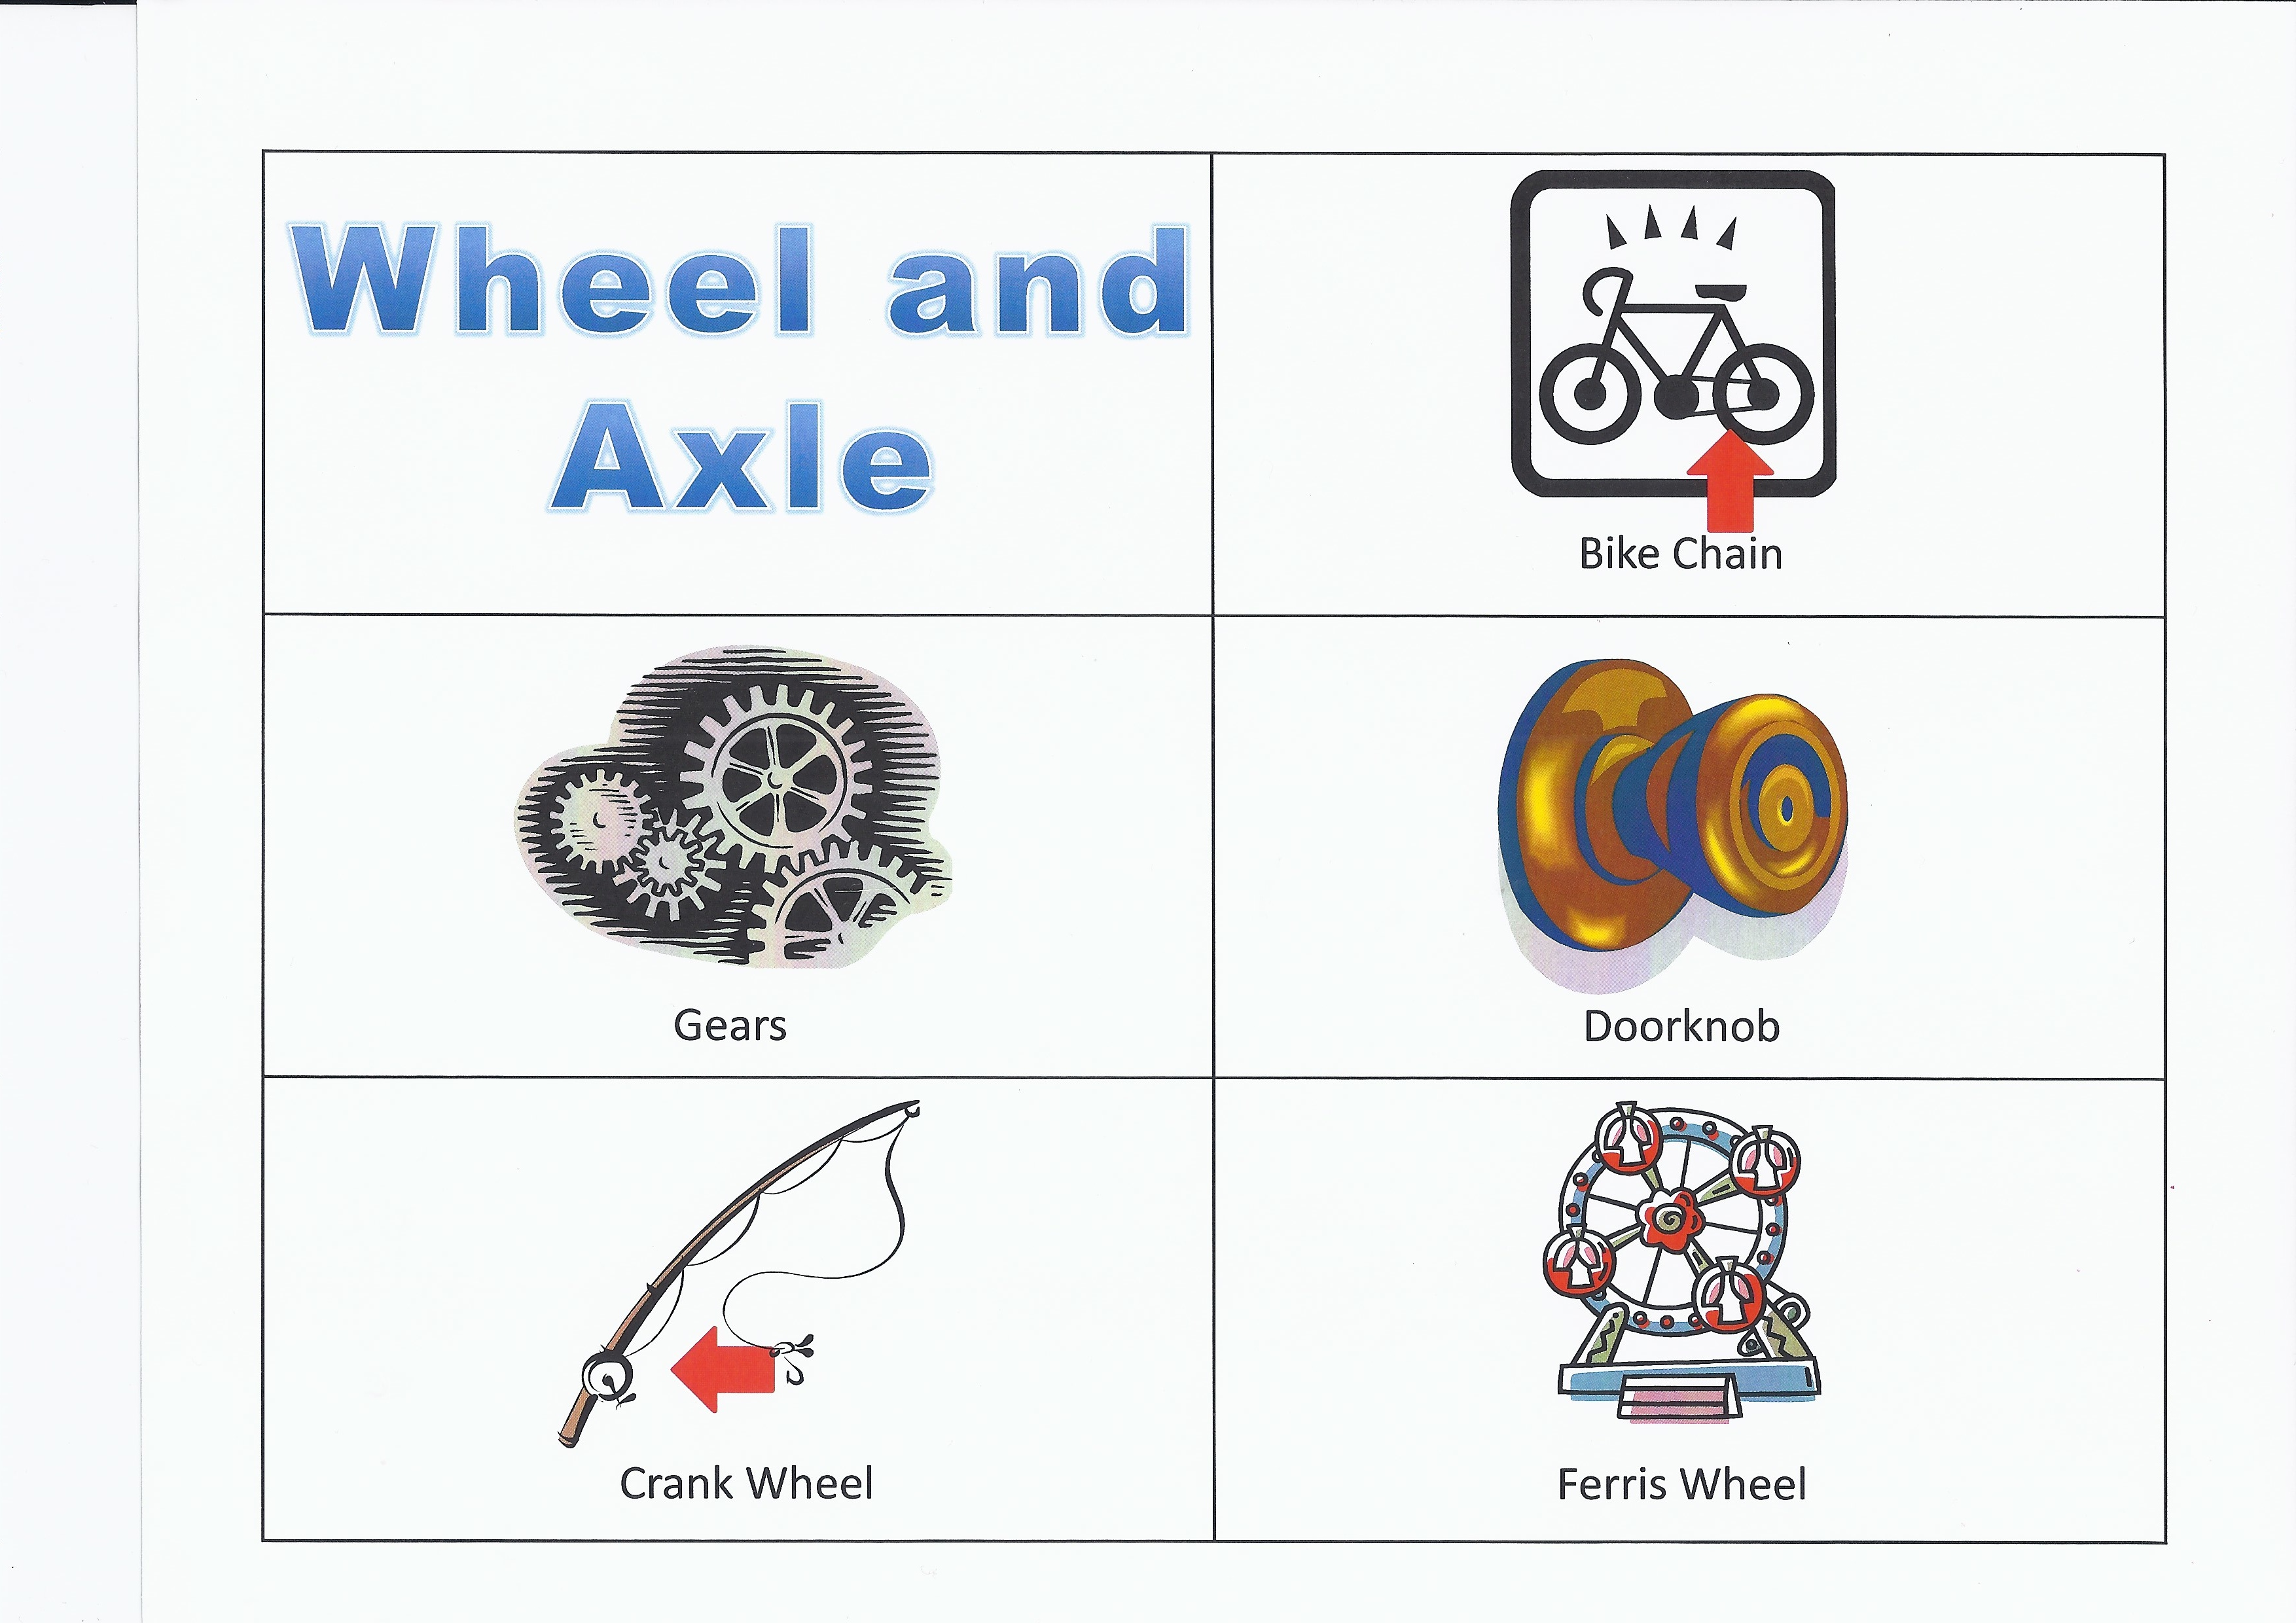 Wheel And Axle Ex les also Wheel And Axle In Everyday Life likewise Wheel And Axle Diagram together with Wheel And Axle Ex les For Kids furthermore Wheel And Axle Ex les In Everyday Life. on examples of wheel and axle in everyday life